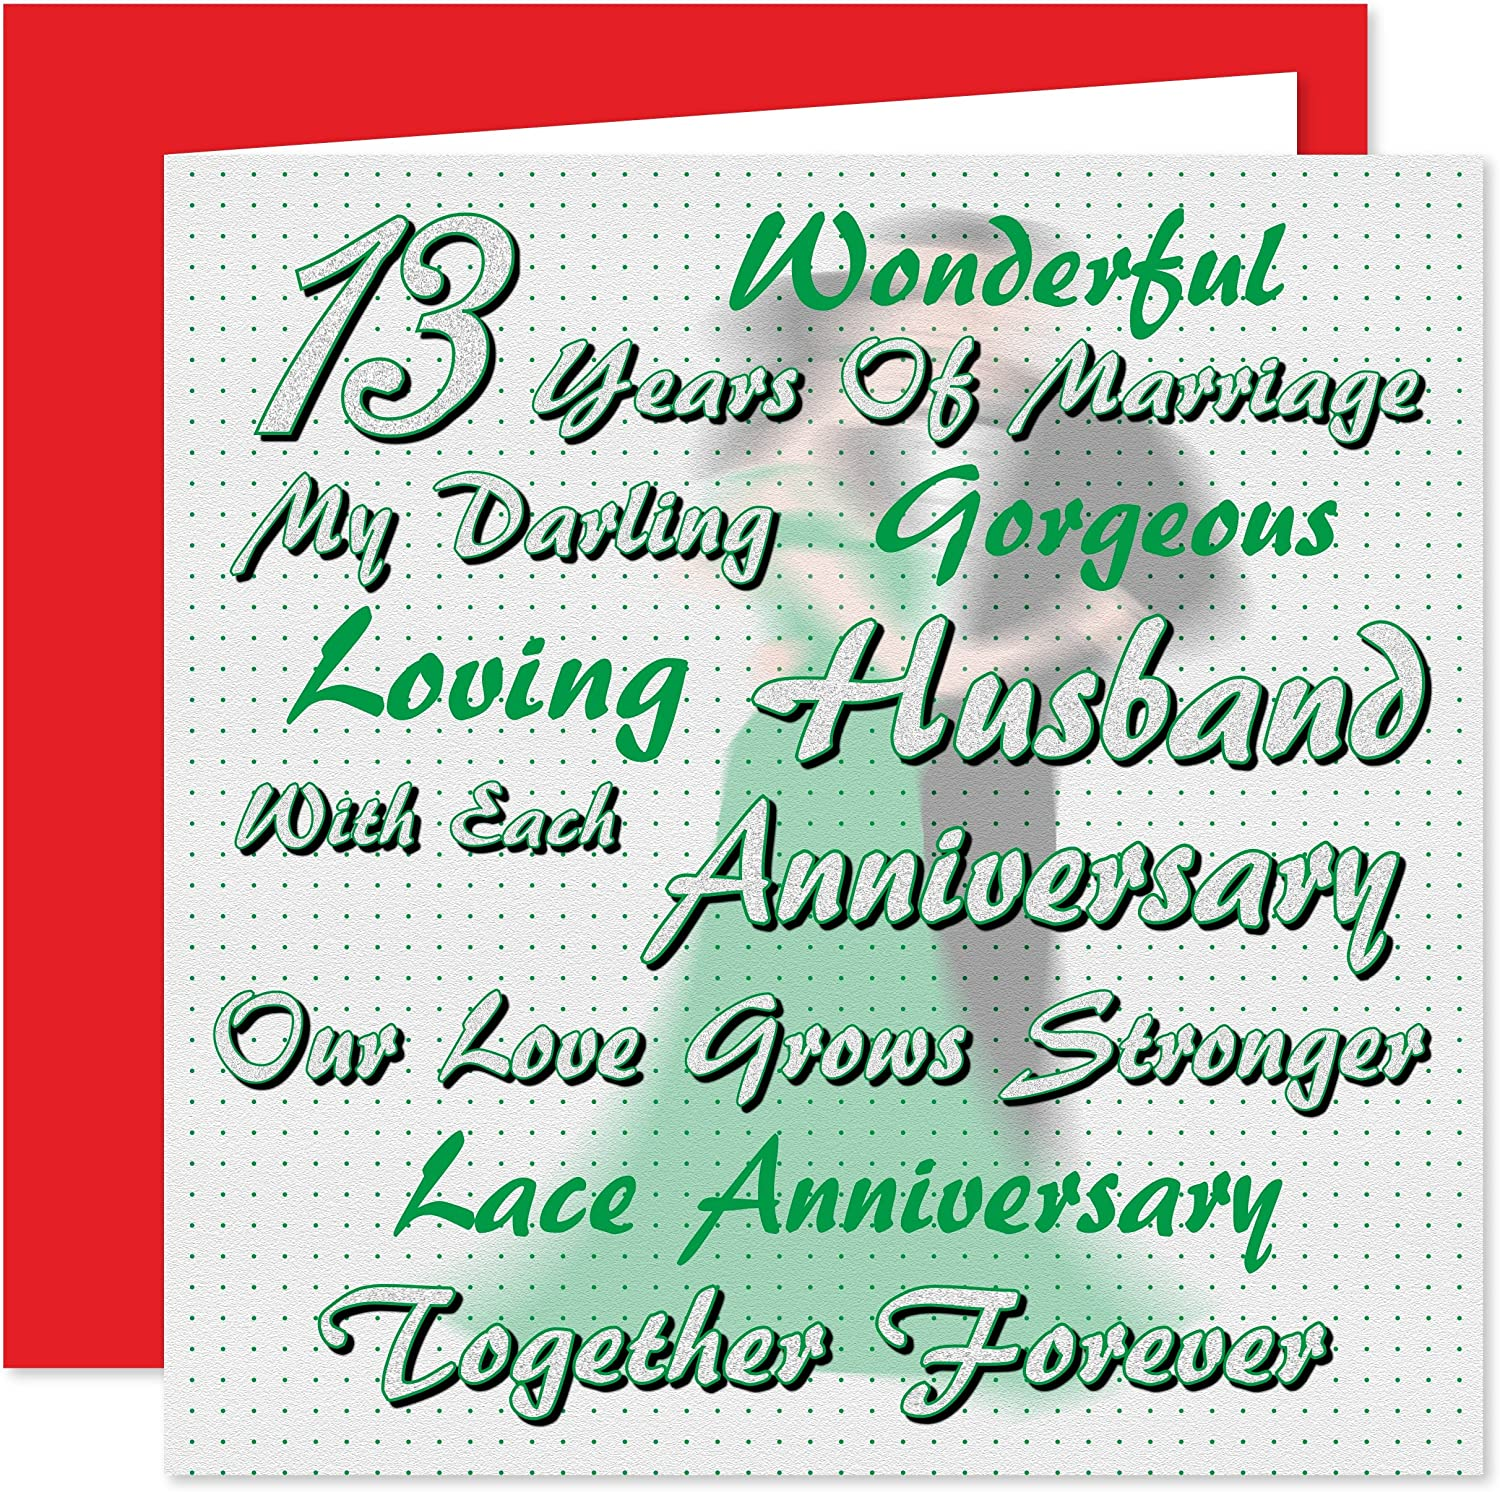 My Husband 13th Wedding Anniversary Card On Our Lace Anniversary I Love You 13 Years Together Forever Amazon Co Uk Office Products